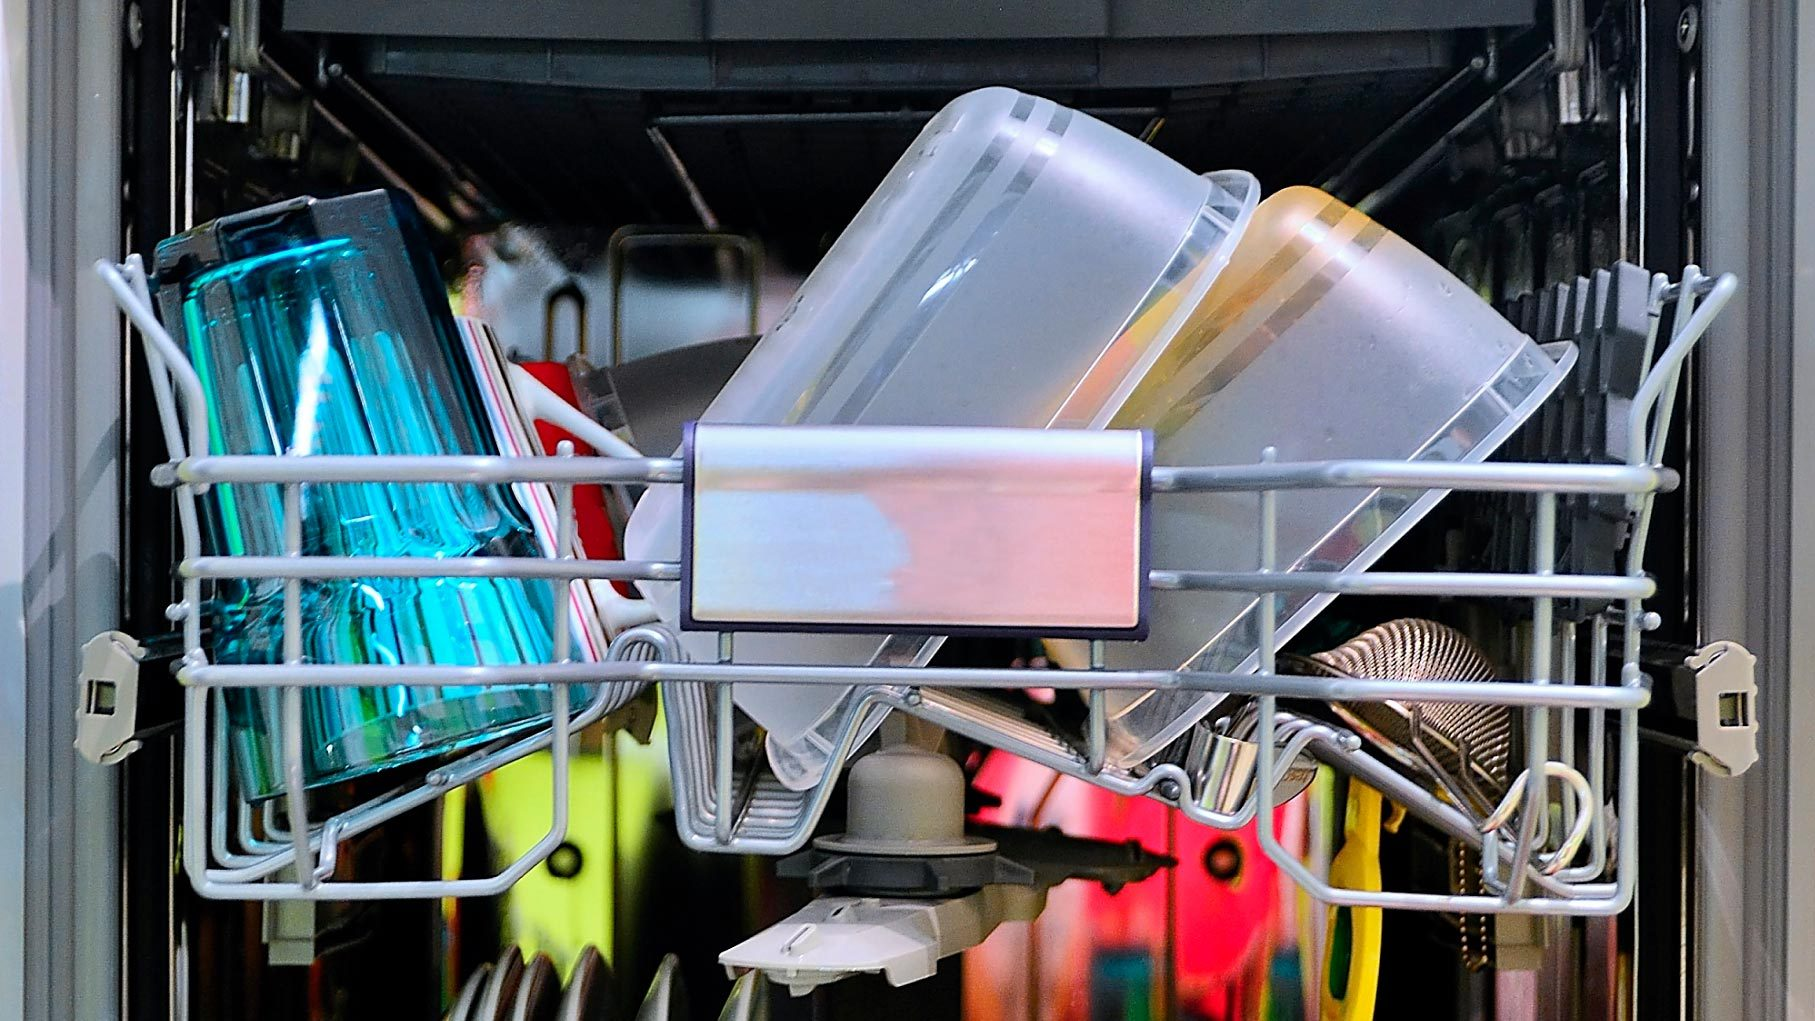 Front view of fully loaded dishwasher with washed clean dishes.